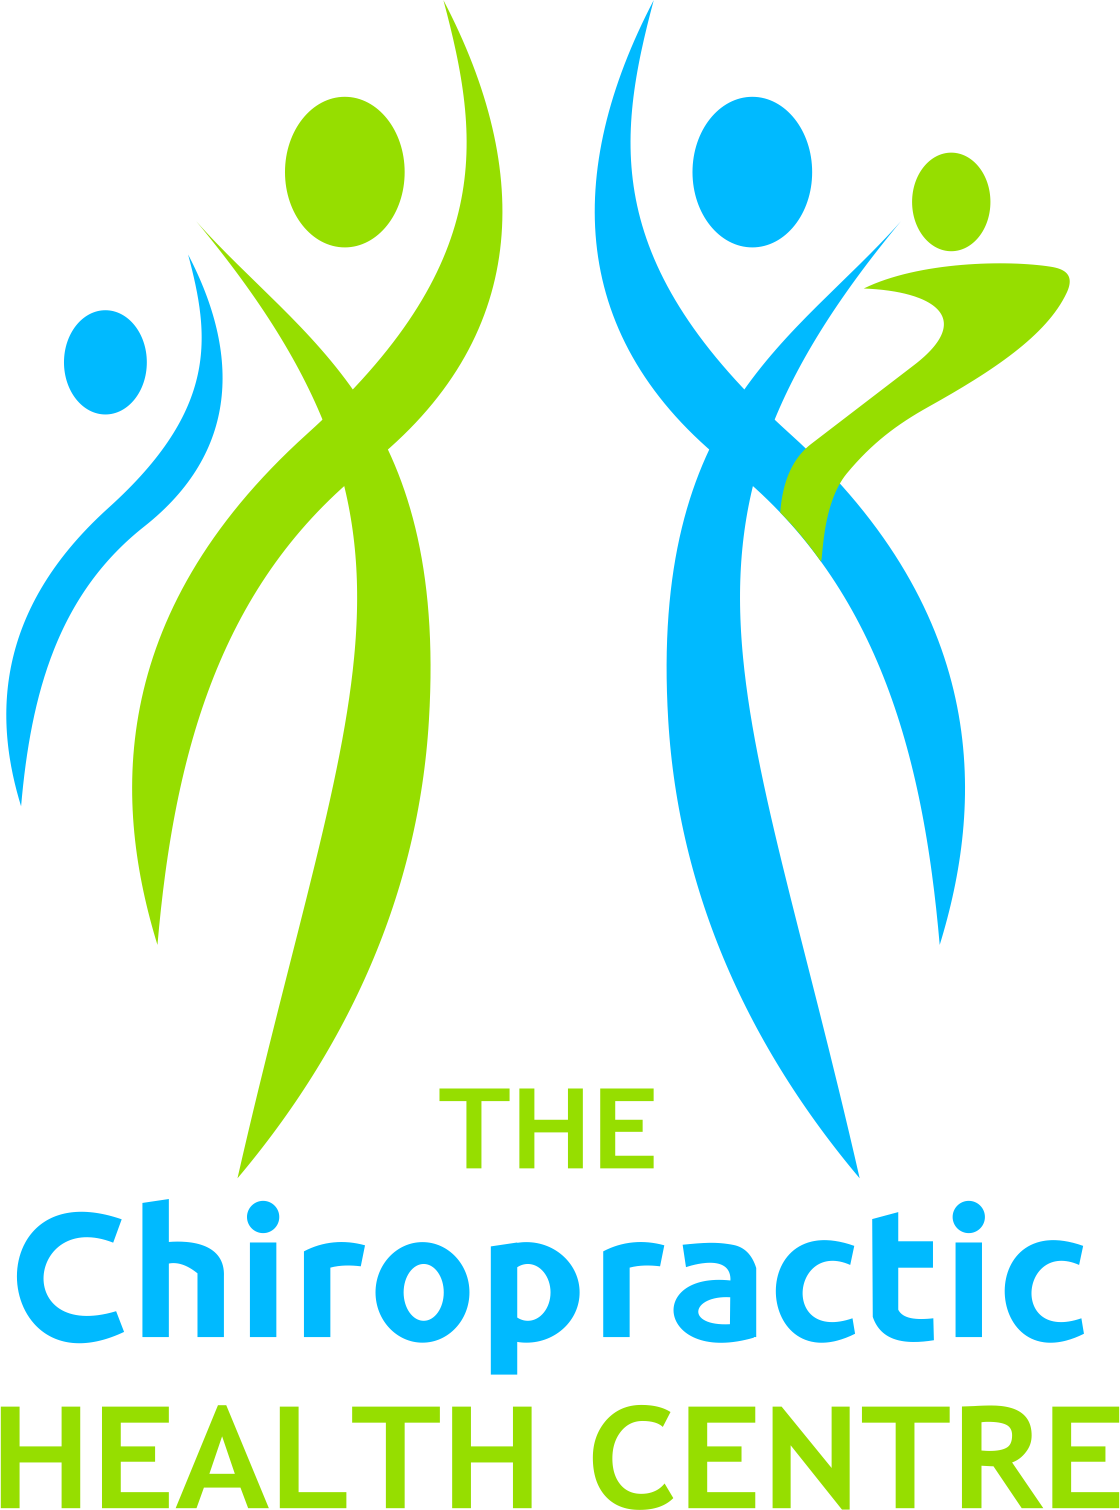 THE CHIROPRACTIC HEALTH CENTRE